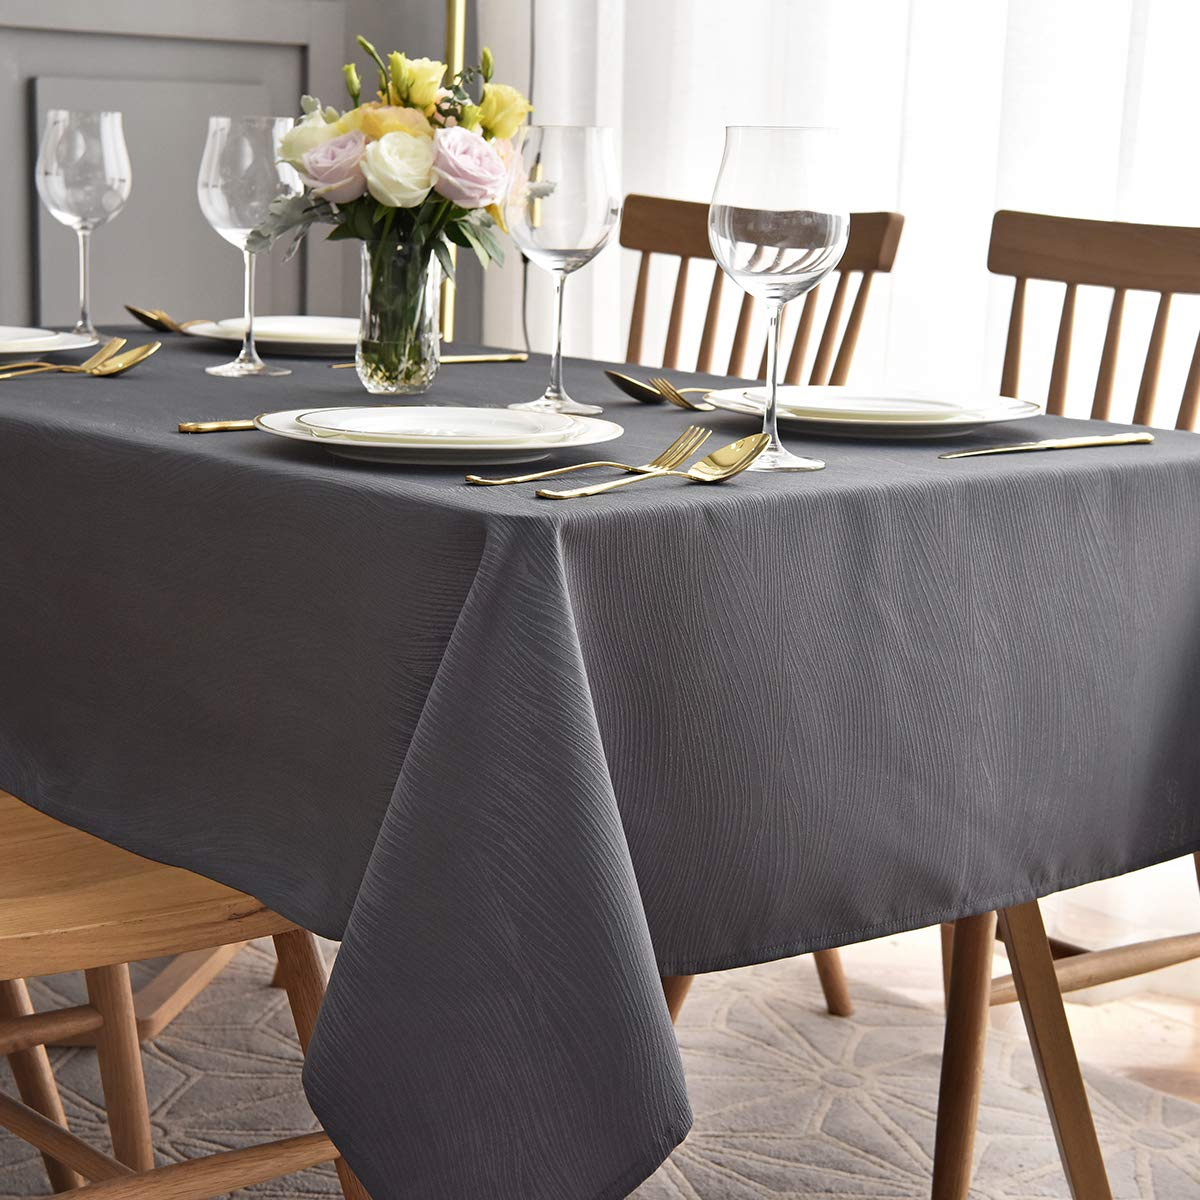 maxmill Jacquard Table Cloth Waving Pattern Water Proof Wrinkle Free Heavy Weight Soft Tablecloth Decorative Fabric Table Cover for Outdoor and Indoor Use Rectangular 60 x 104 Inch Charcoal